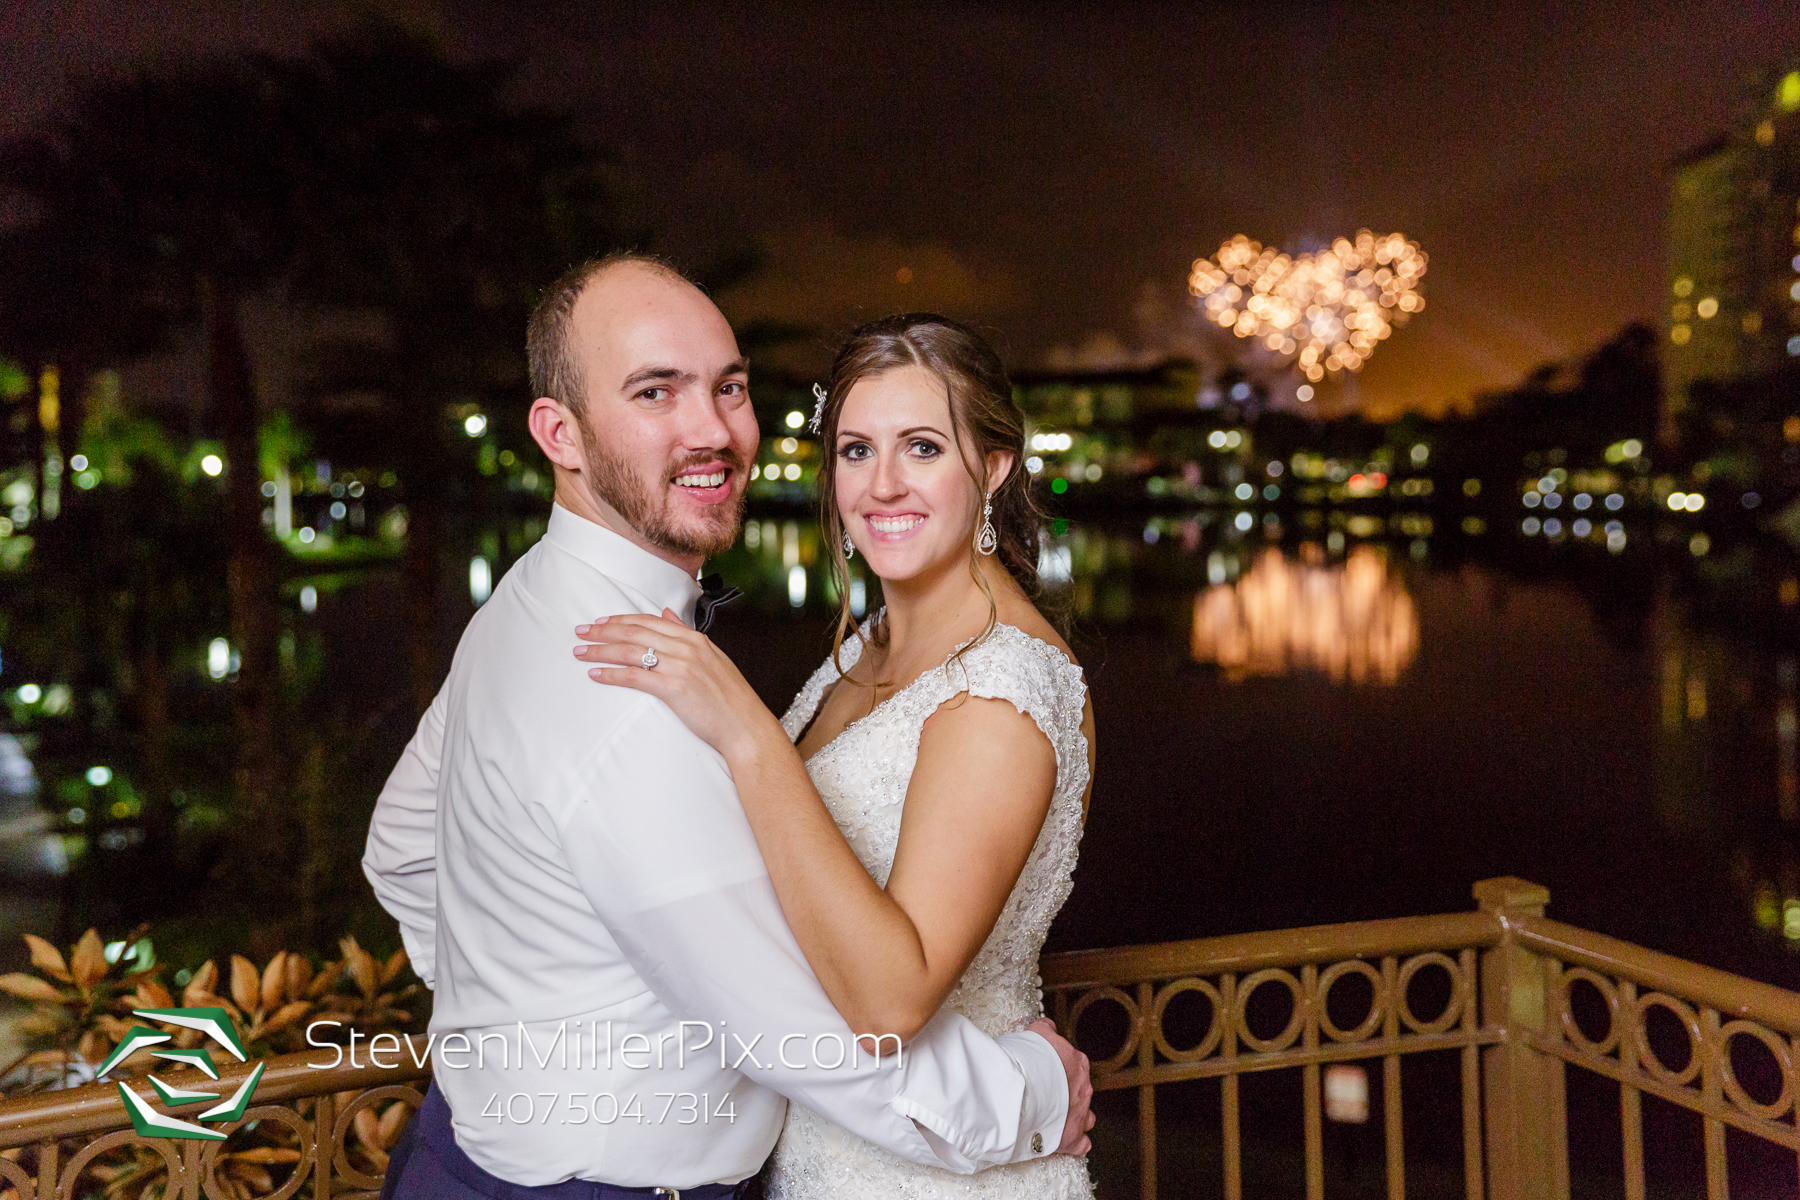 Melissa & Ben's Wyndham Bonnet Creek Wedding